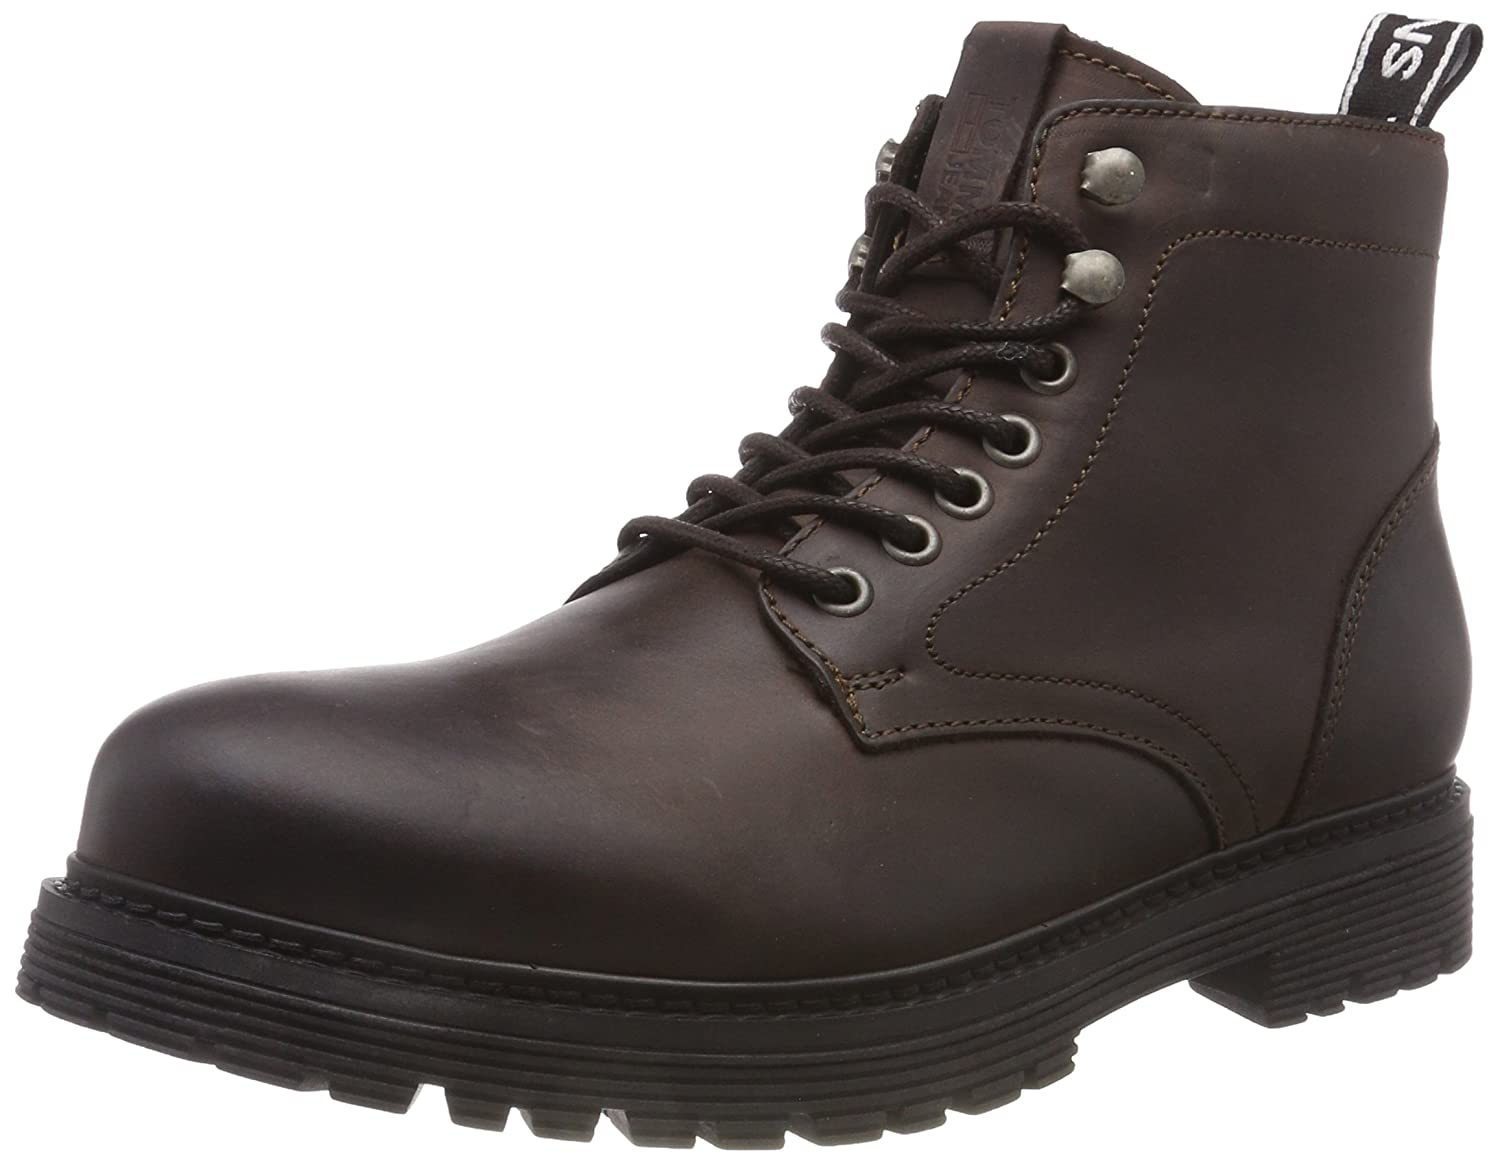 TALLA 42 EU. Tommy Jeans Outdoor Lace Up Boot, Botas Militar para Hombre